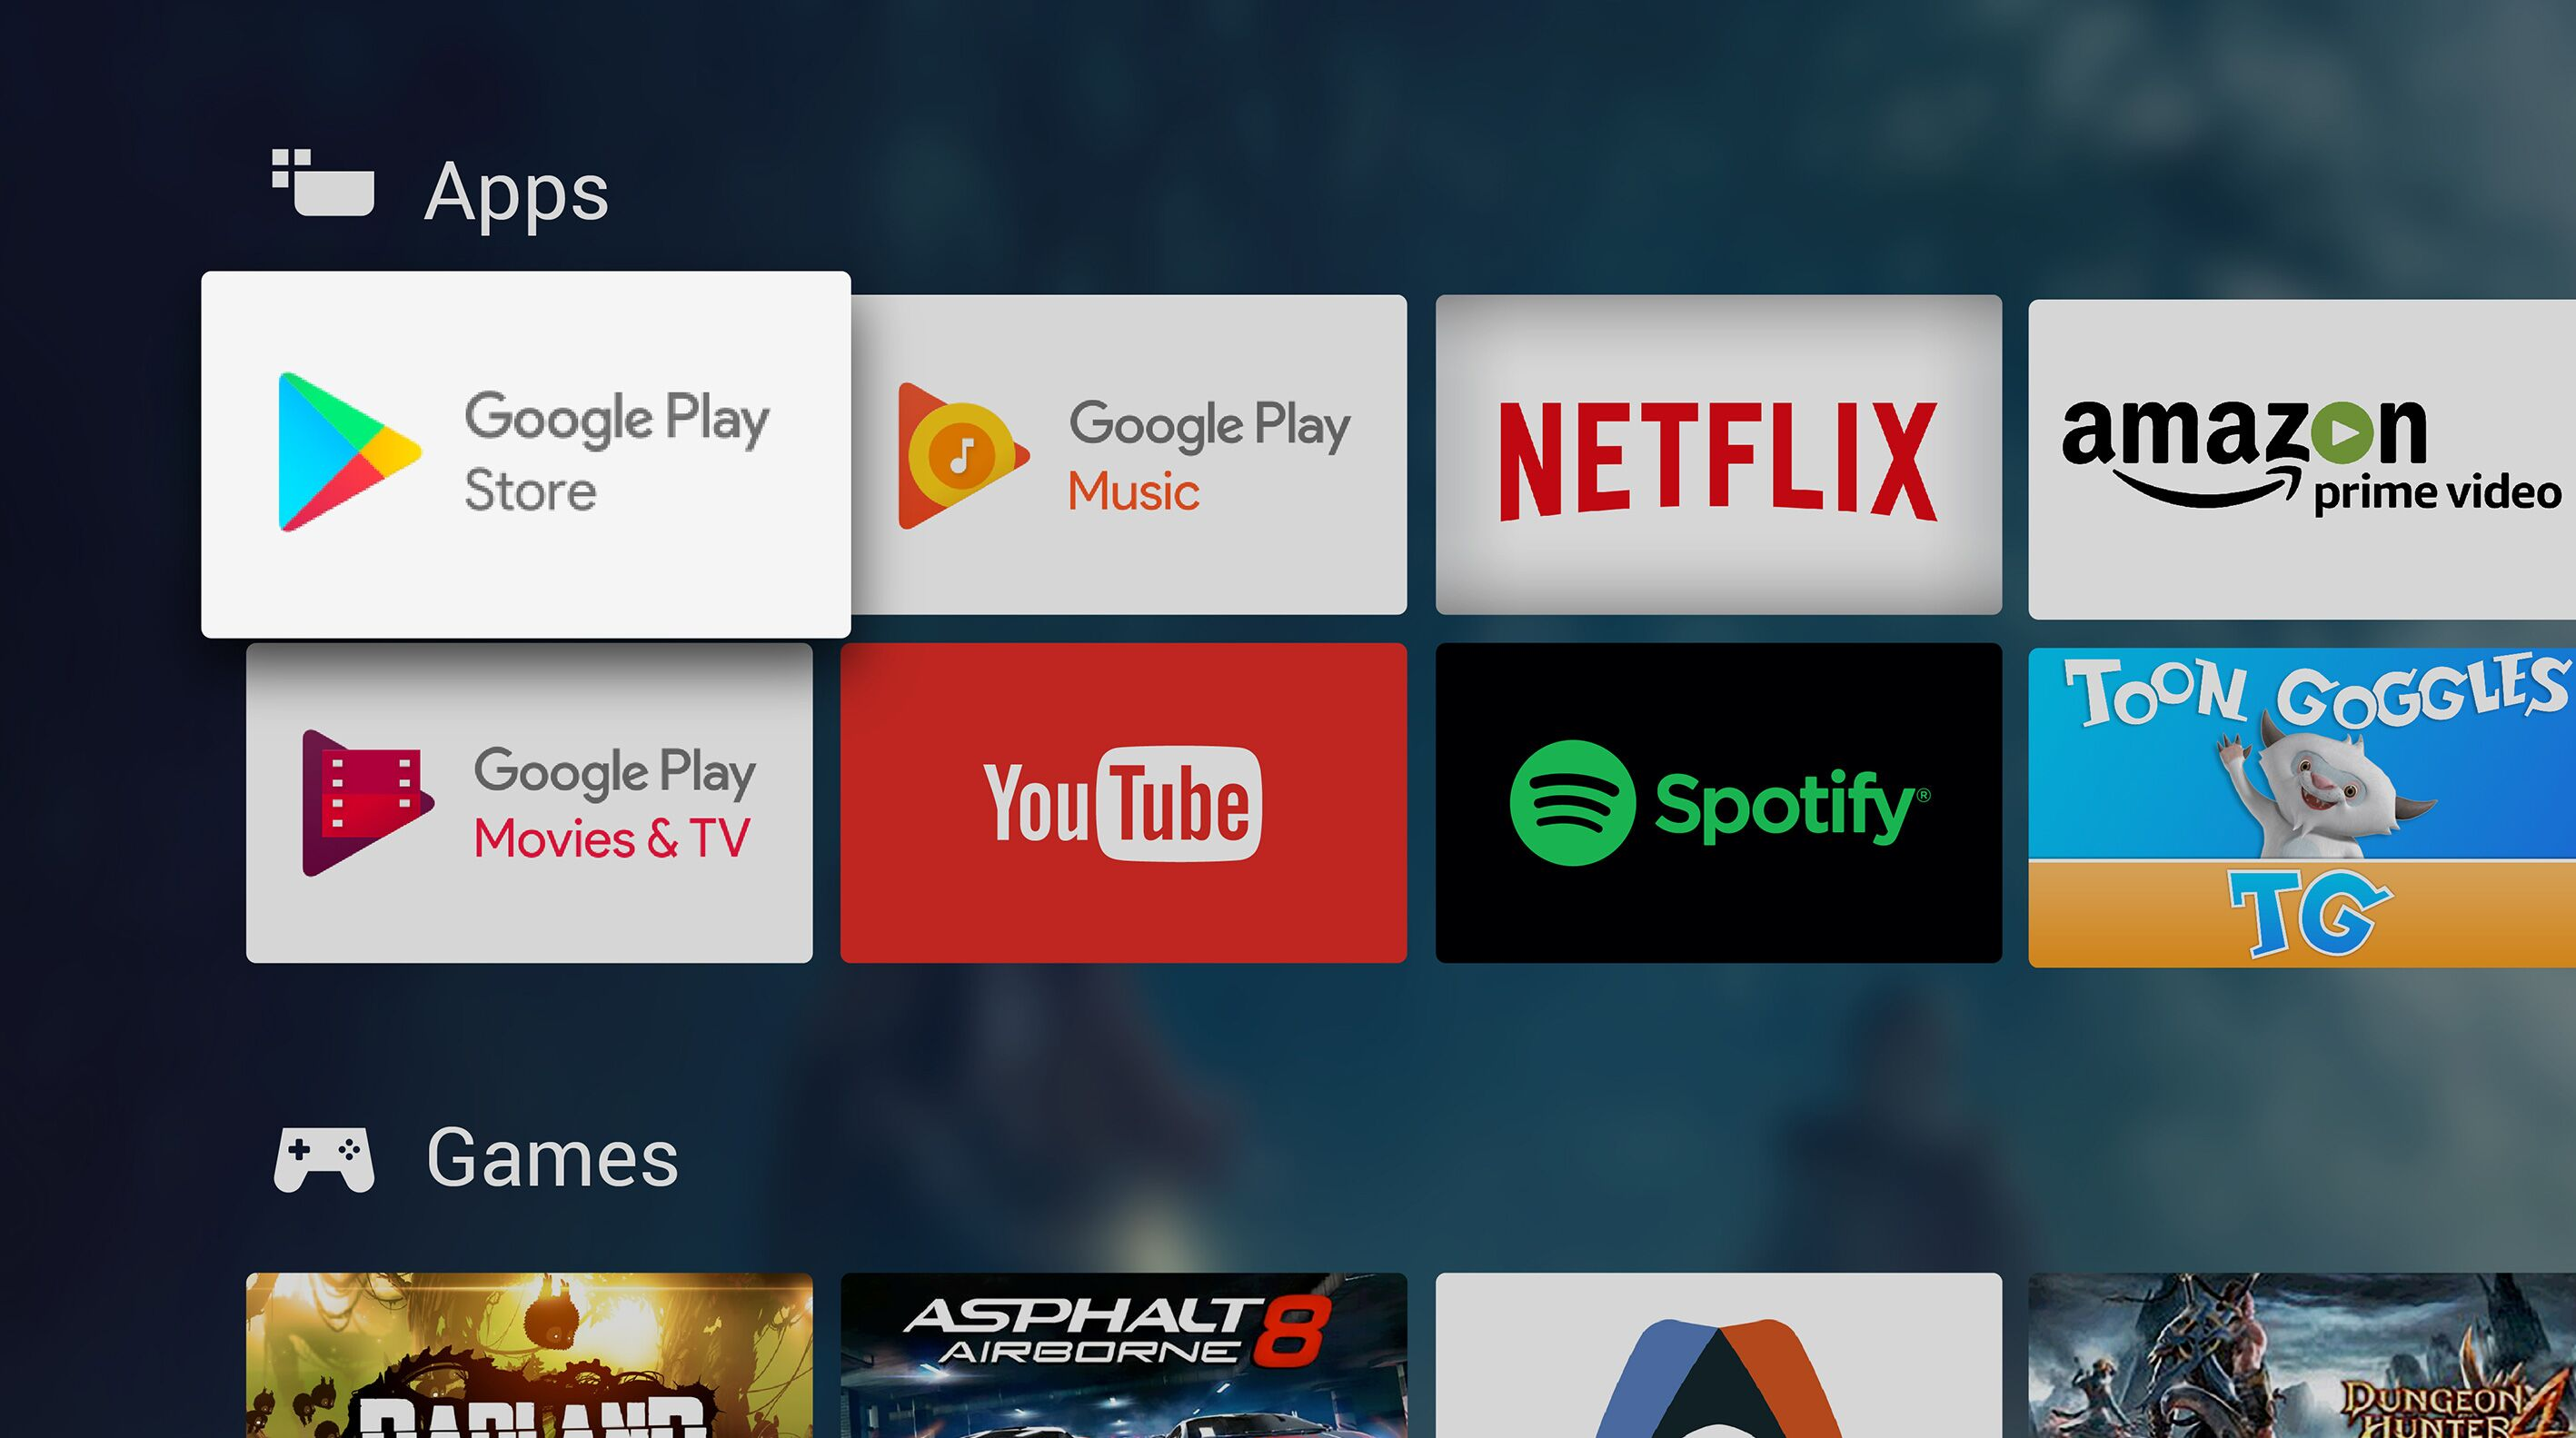 Philips OLED 903 Google Play Android TV